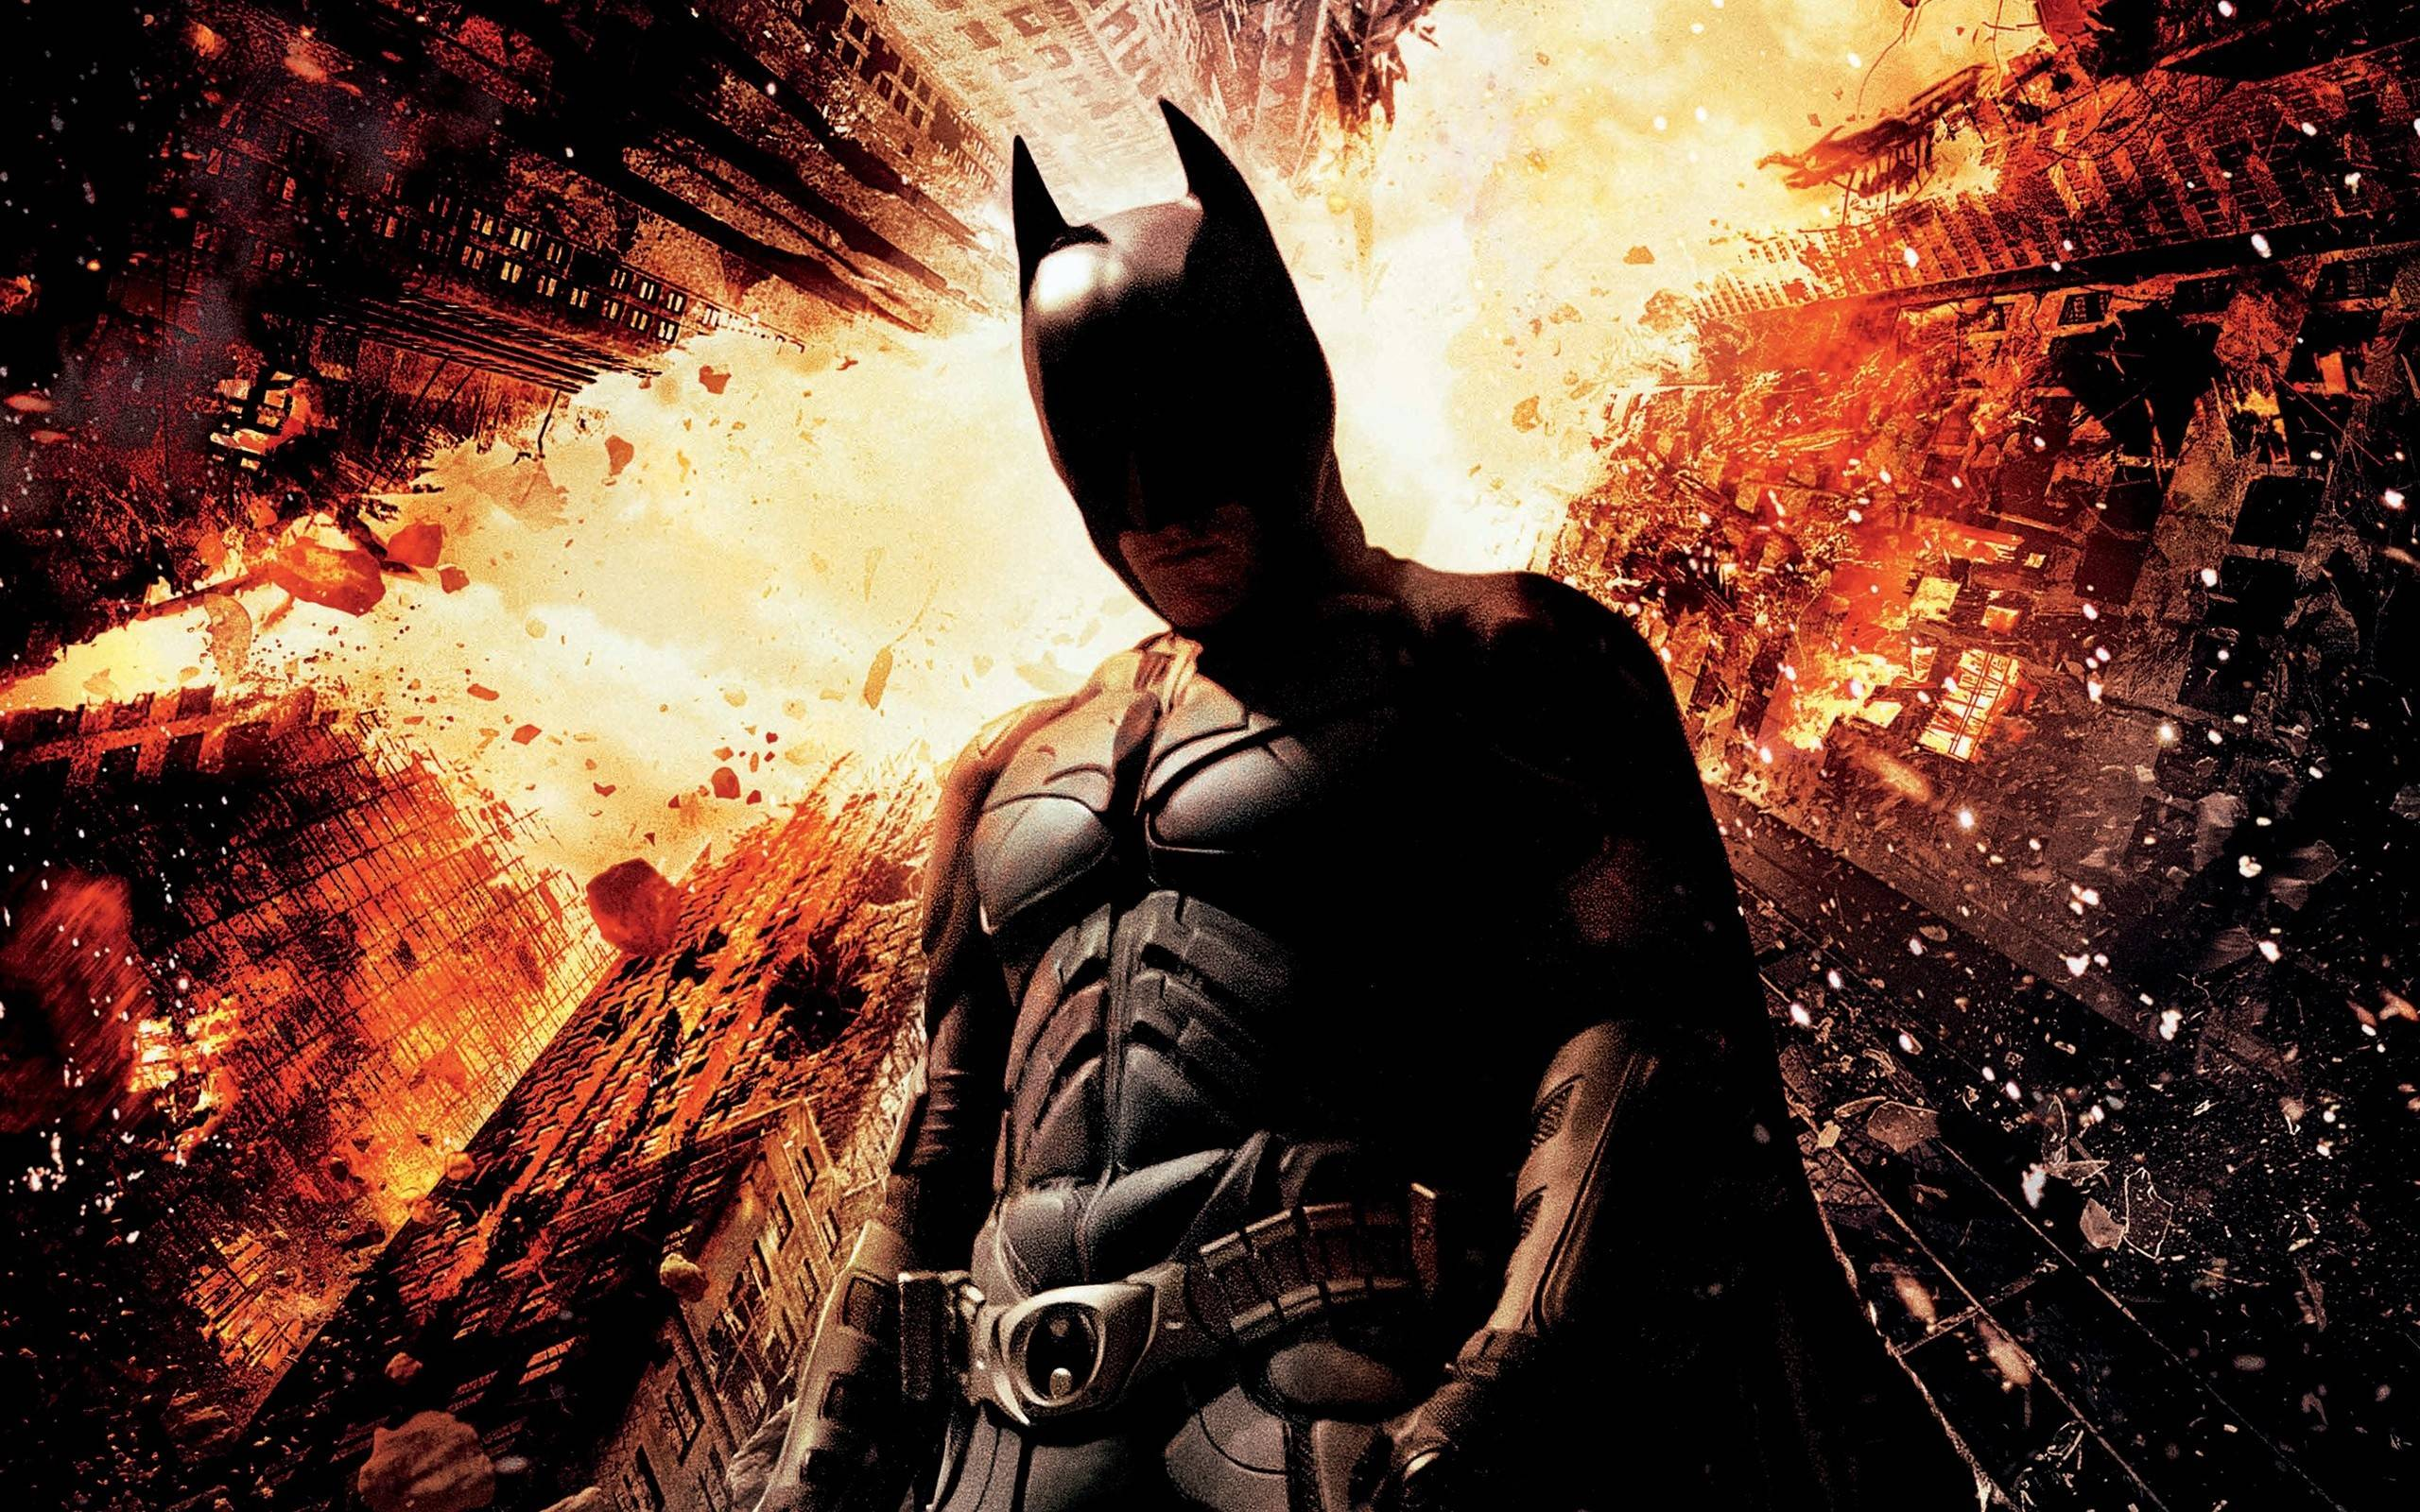 The Dark Knight Rises Wallpapers - Wallpaper Cave